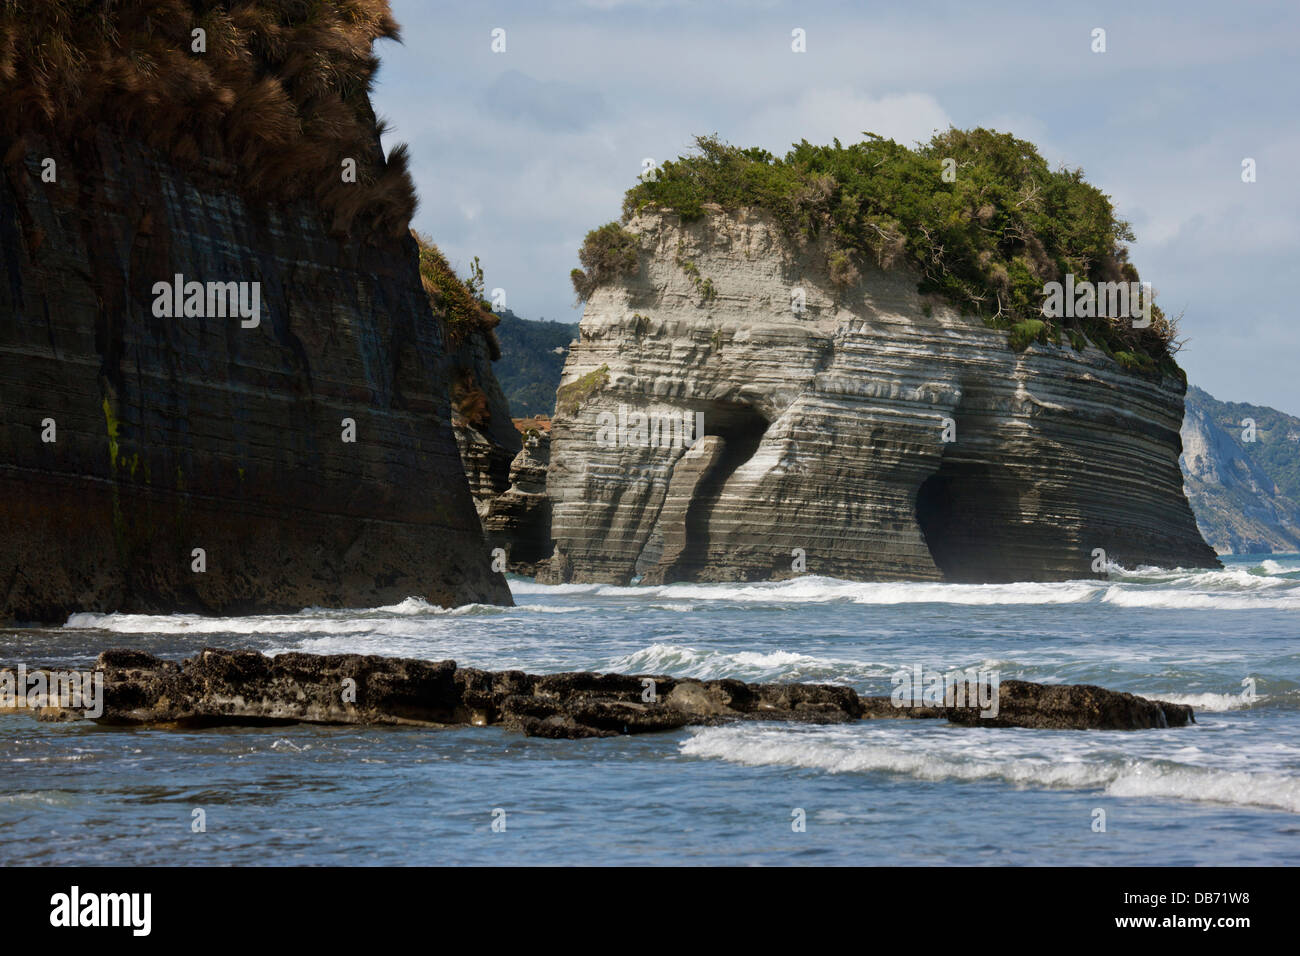 South Pacific, New Zealand, North Island. View of Elephant Rock and its arch. - Stock Image